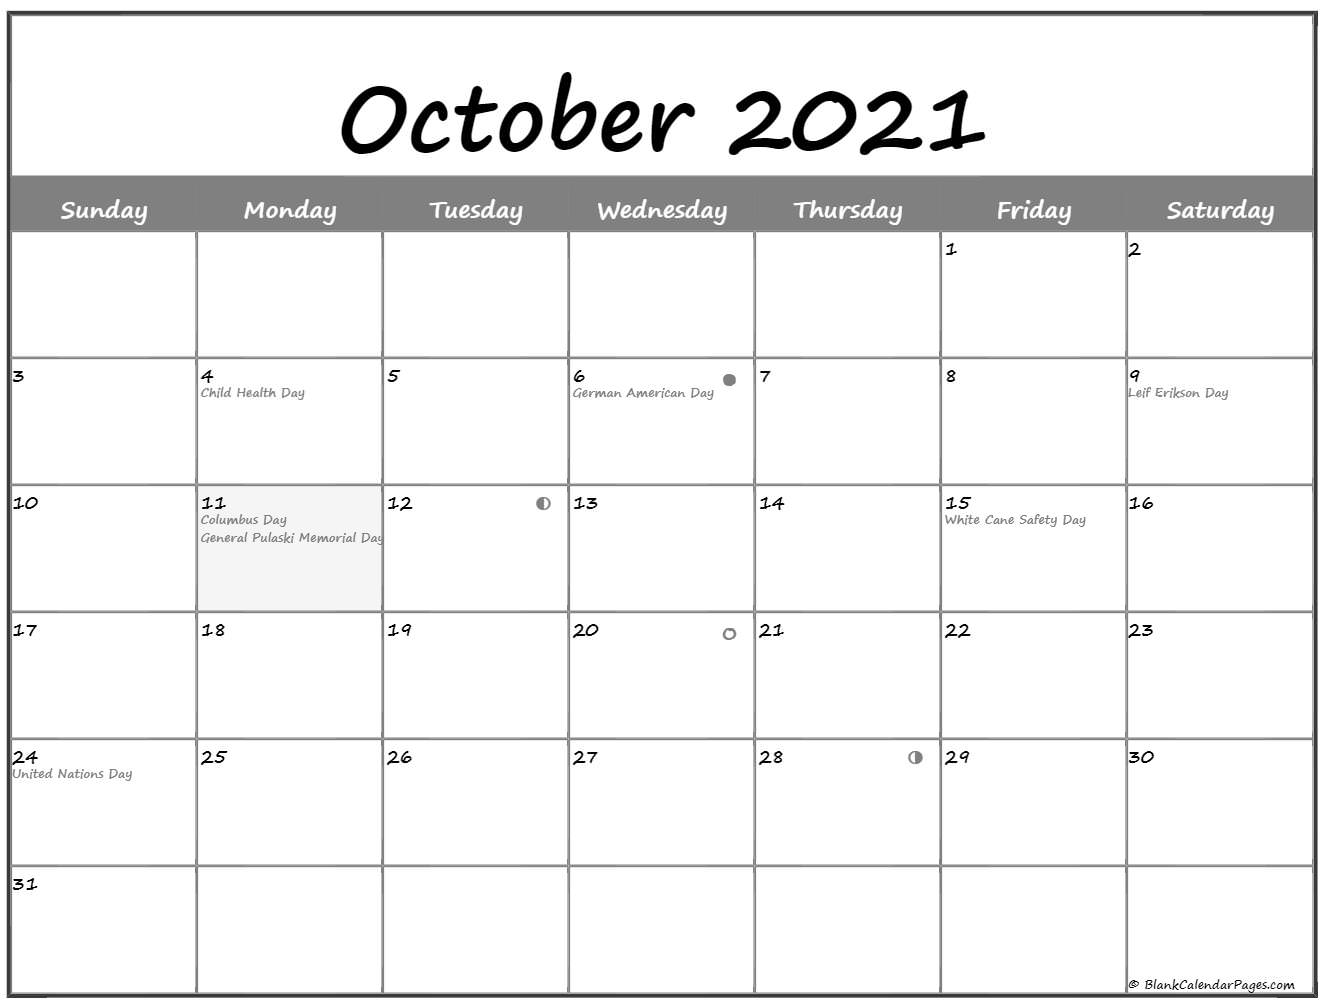 October 2020 Lunar calendar. moon phase calendar with USA holidays